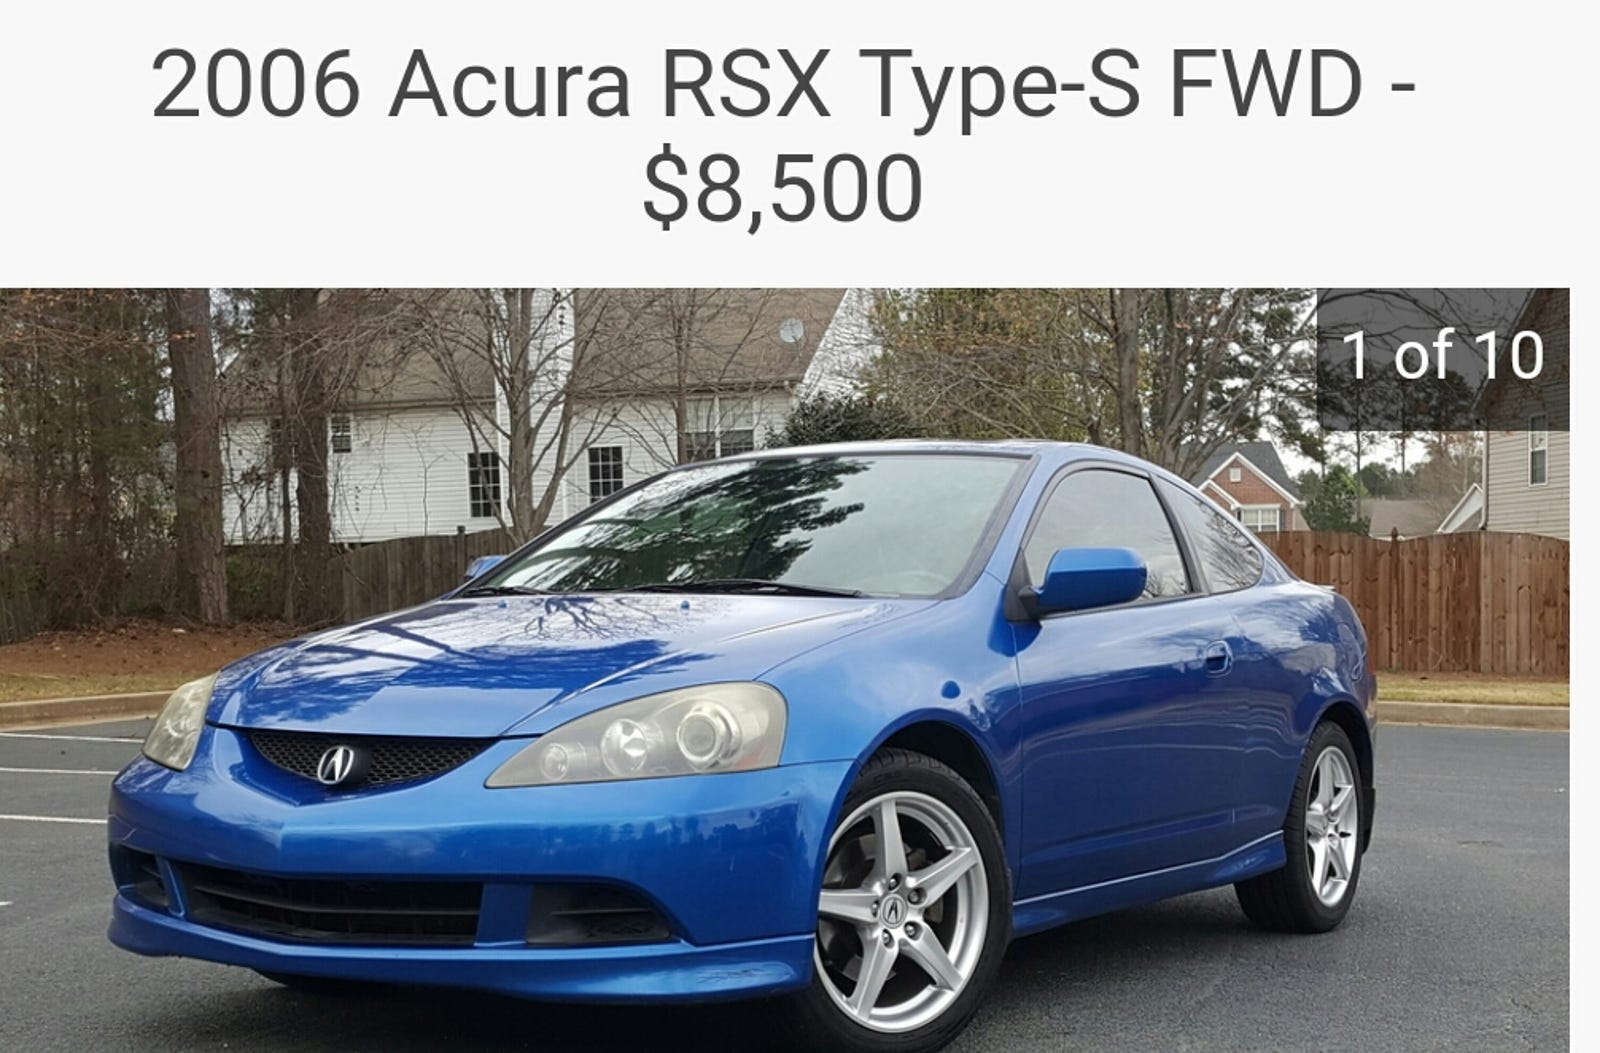 Oppo NPOCP- 2003 Acura RSX Type-S for $3,995 and a 2006 for $8,500